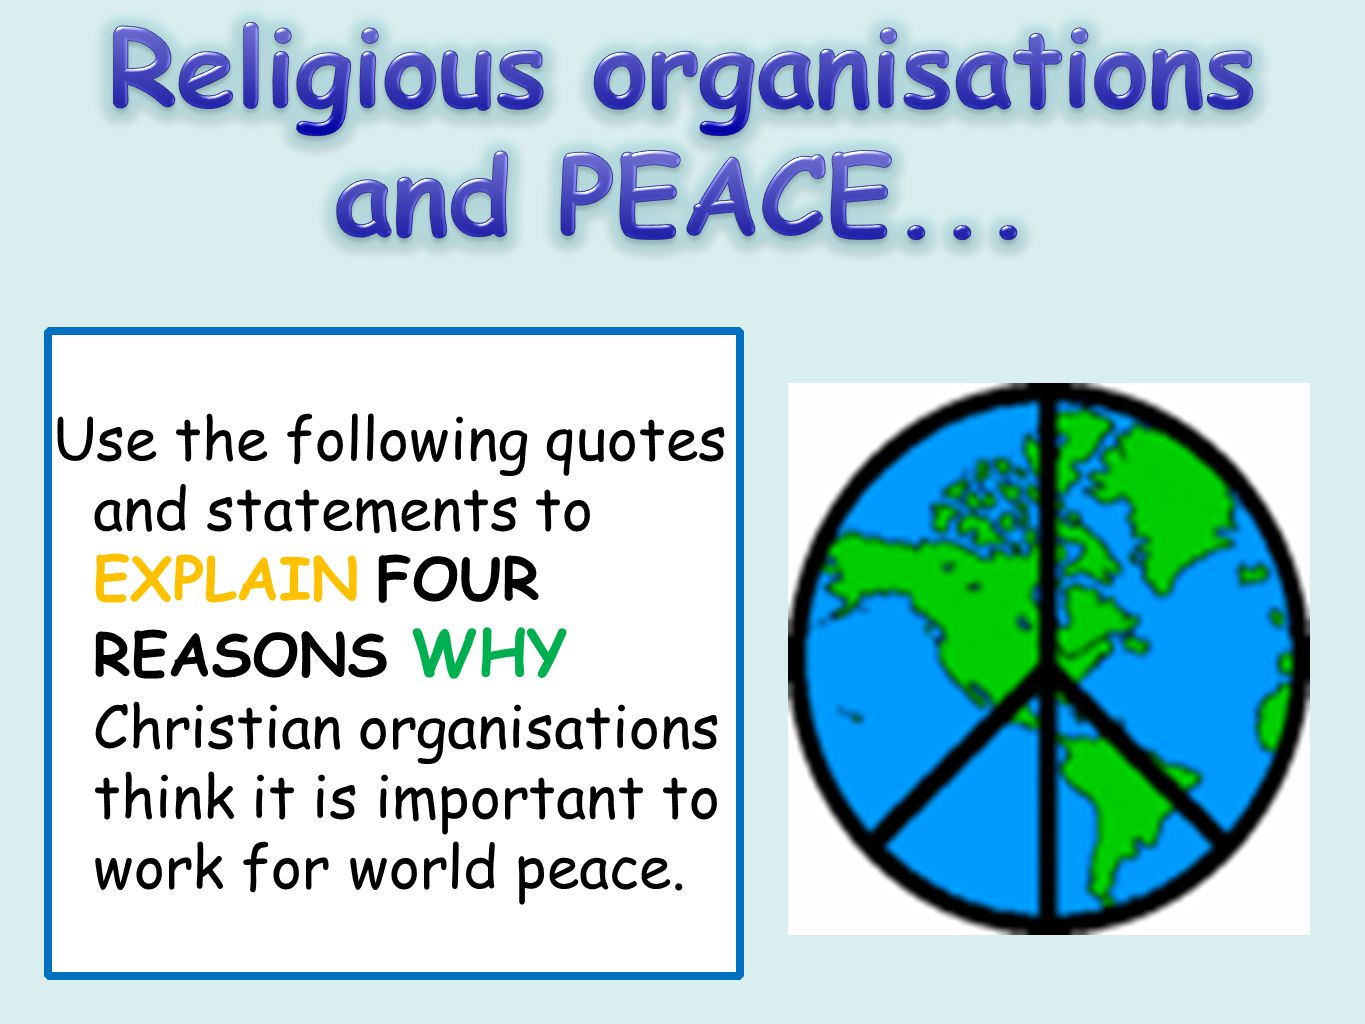 Use the following quotes and statements to EXPLAIN FOUR REASONS WHY Christian organisations think it is important to work for world peace.